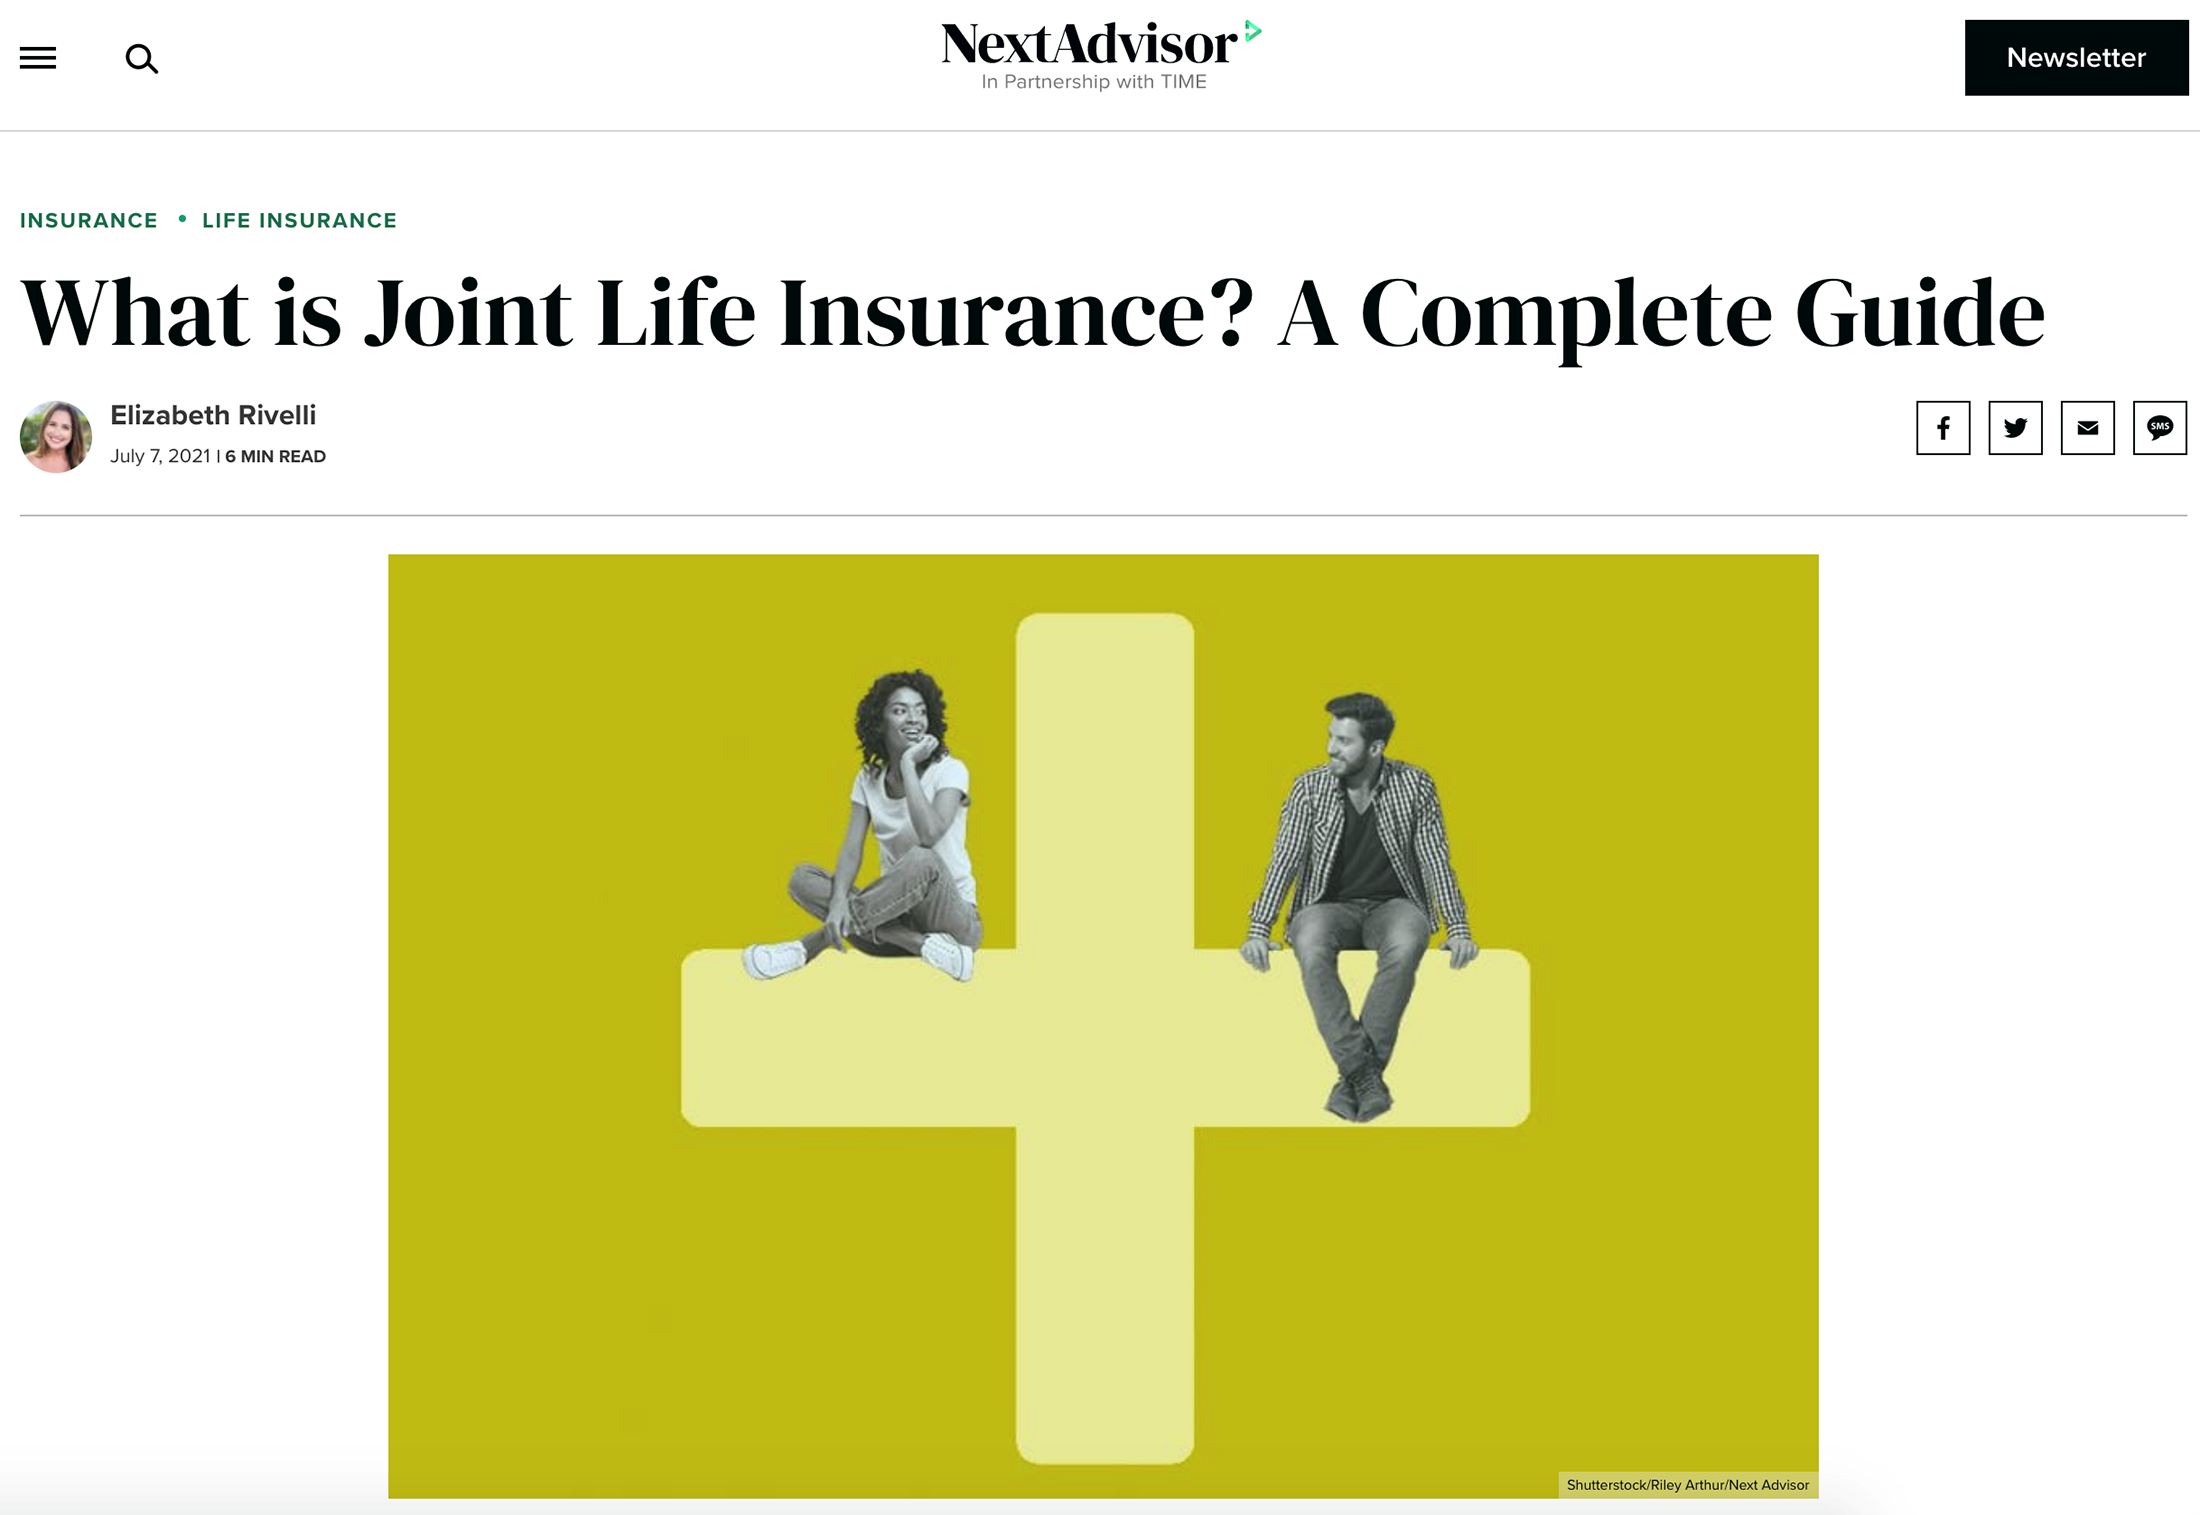 nextadvisor-quotes-svp-joe-sellitto-in-an-article-on-joint-life-insurance